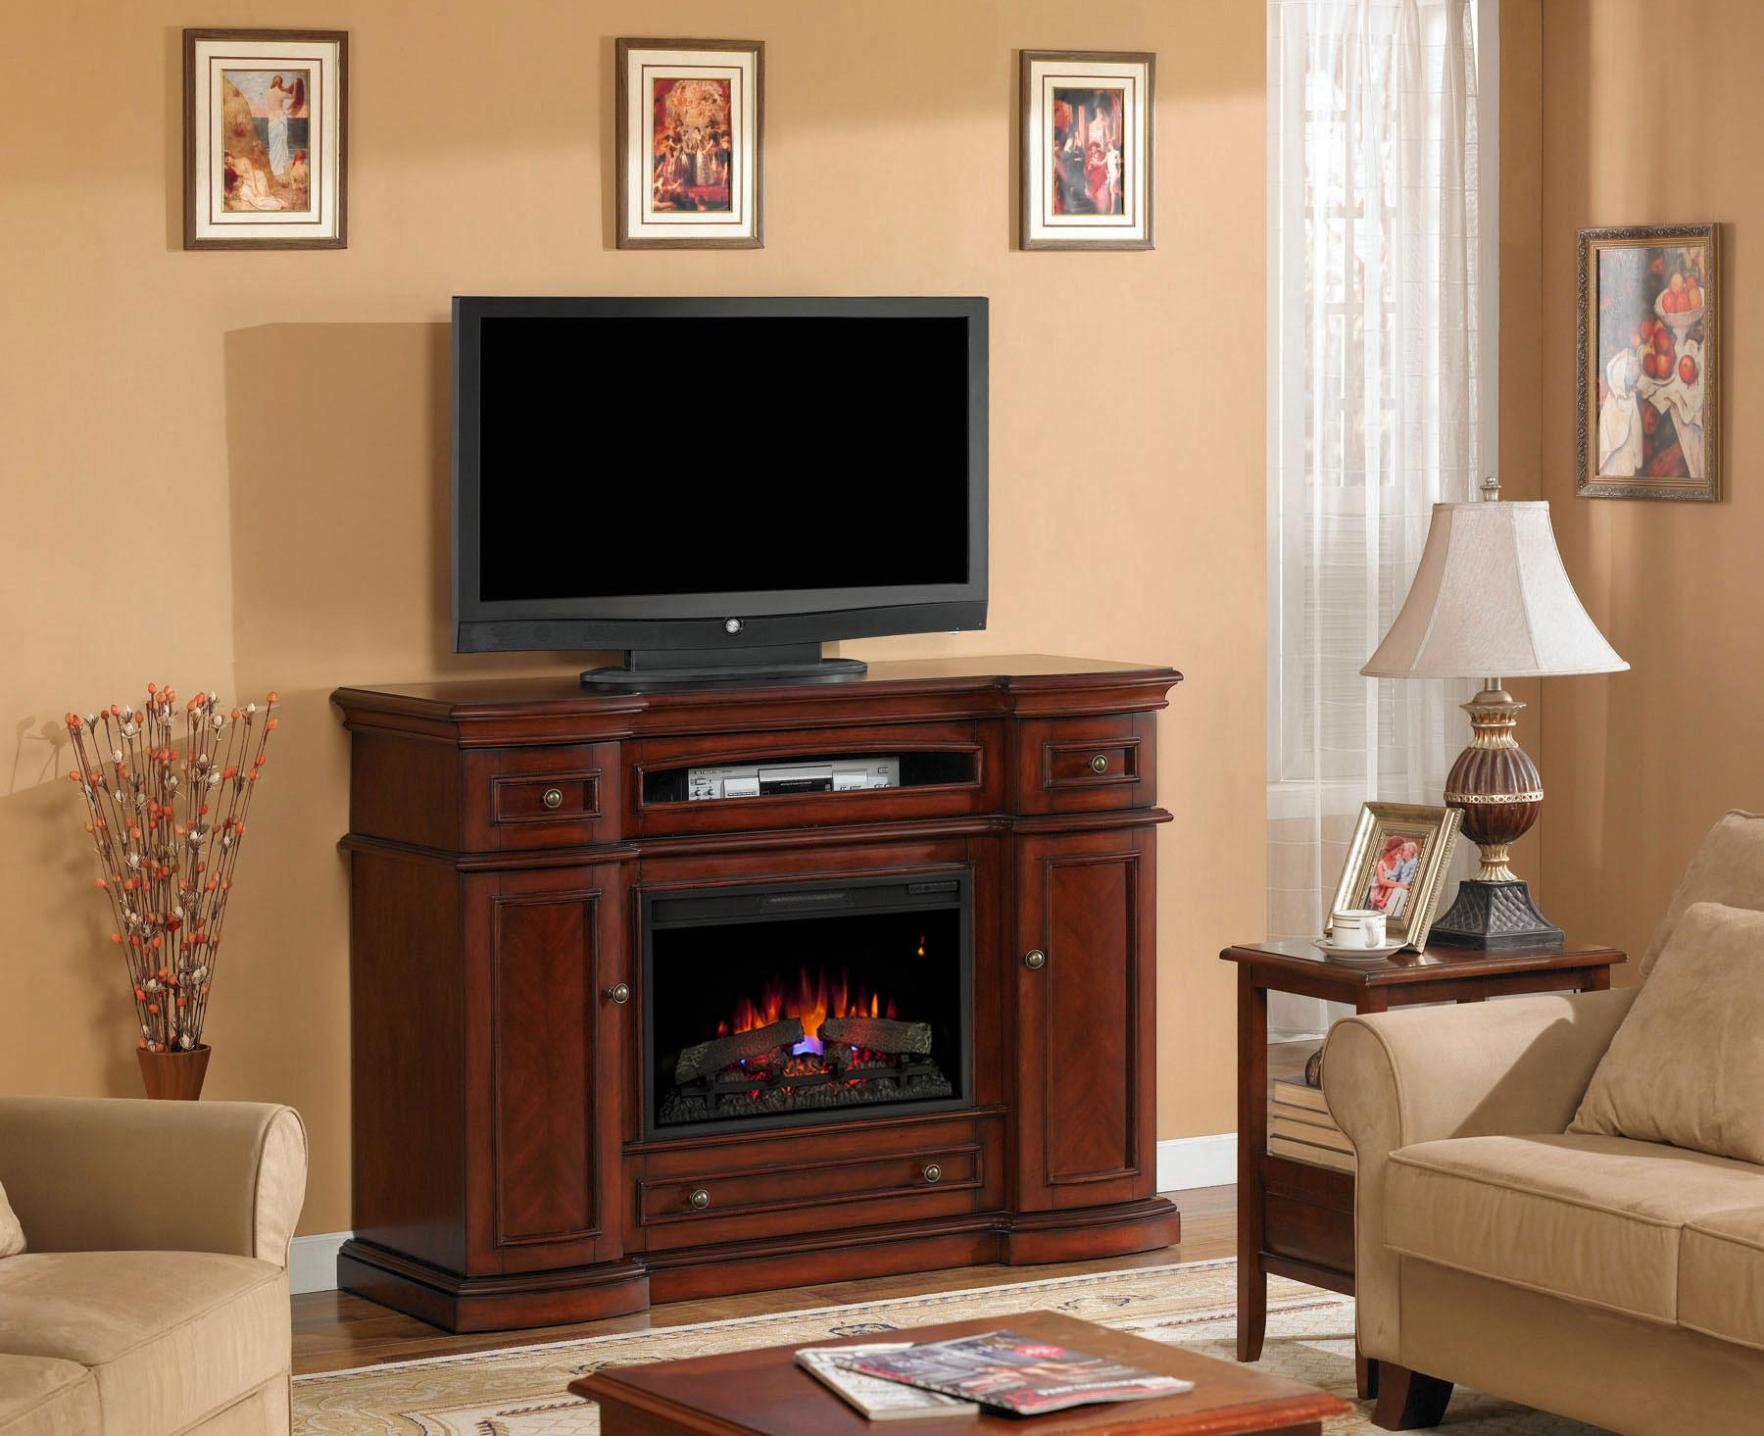 Image of: Electric Fireplace With Tv Above